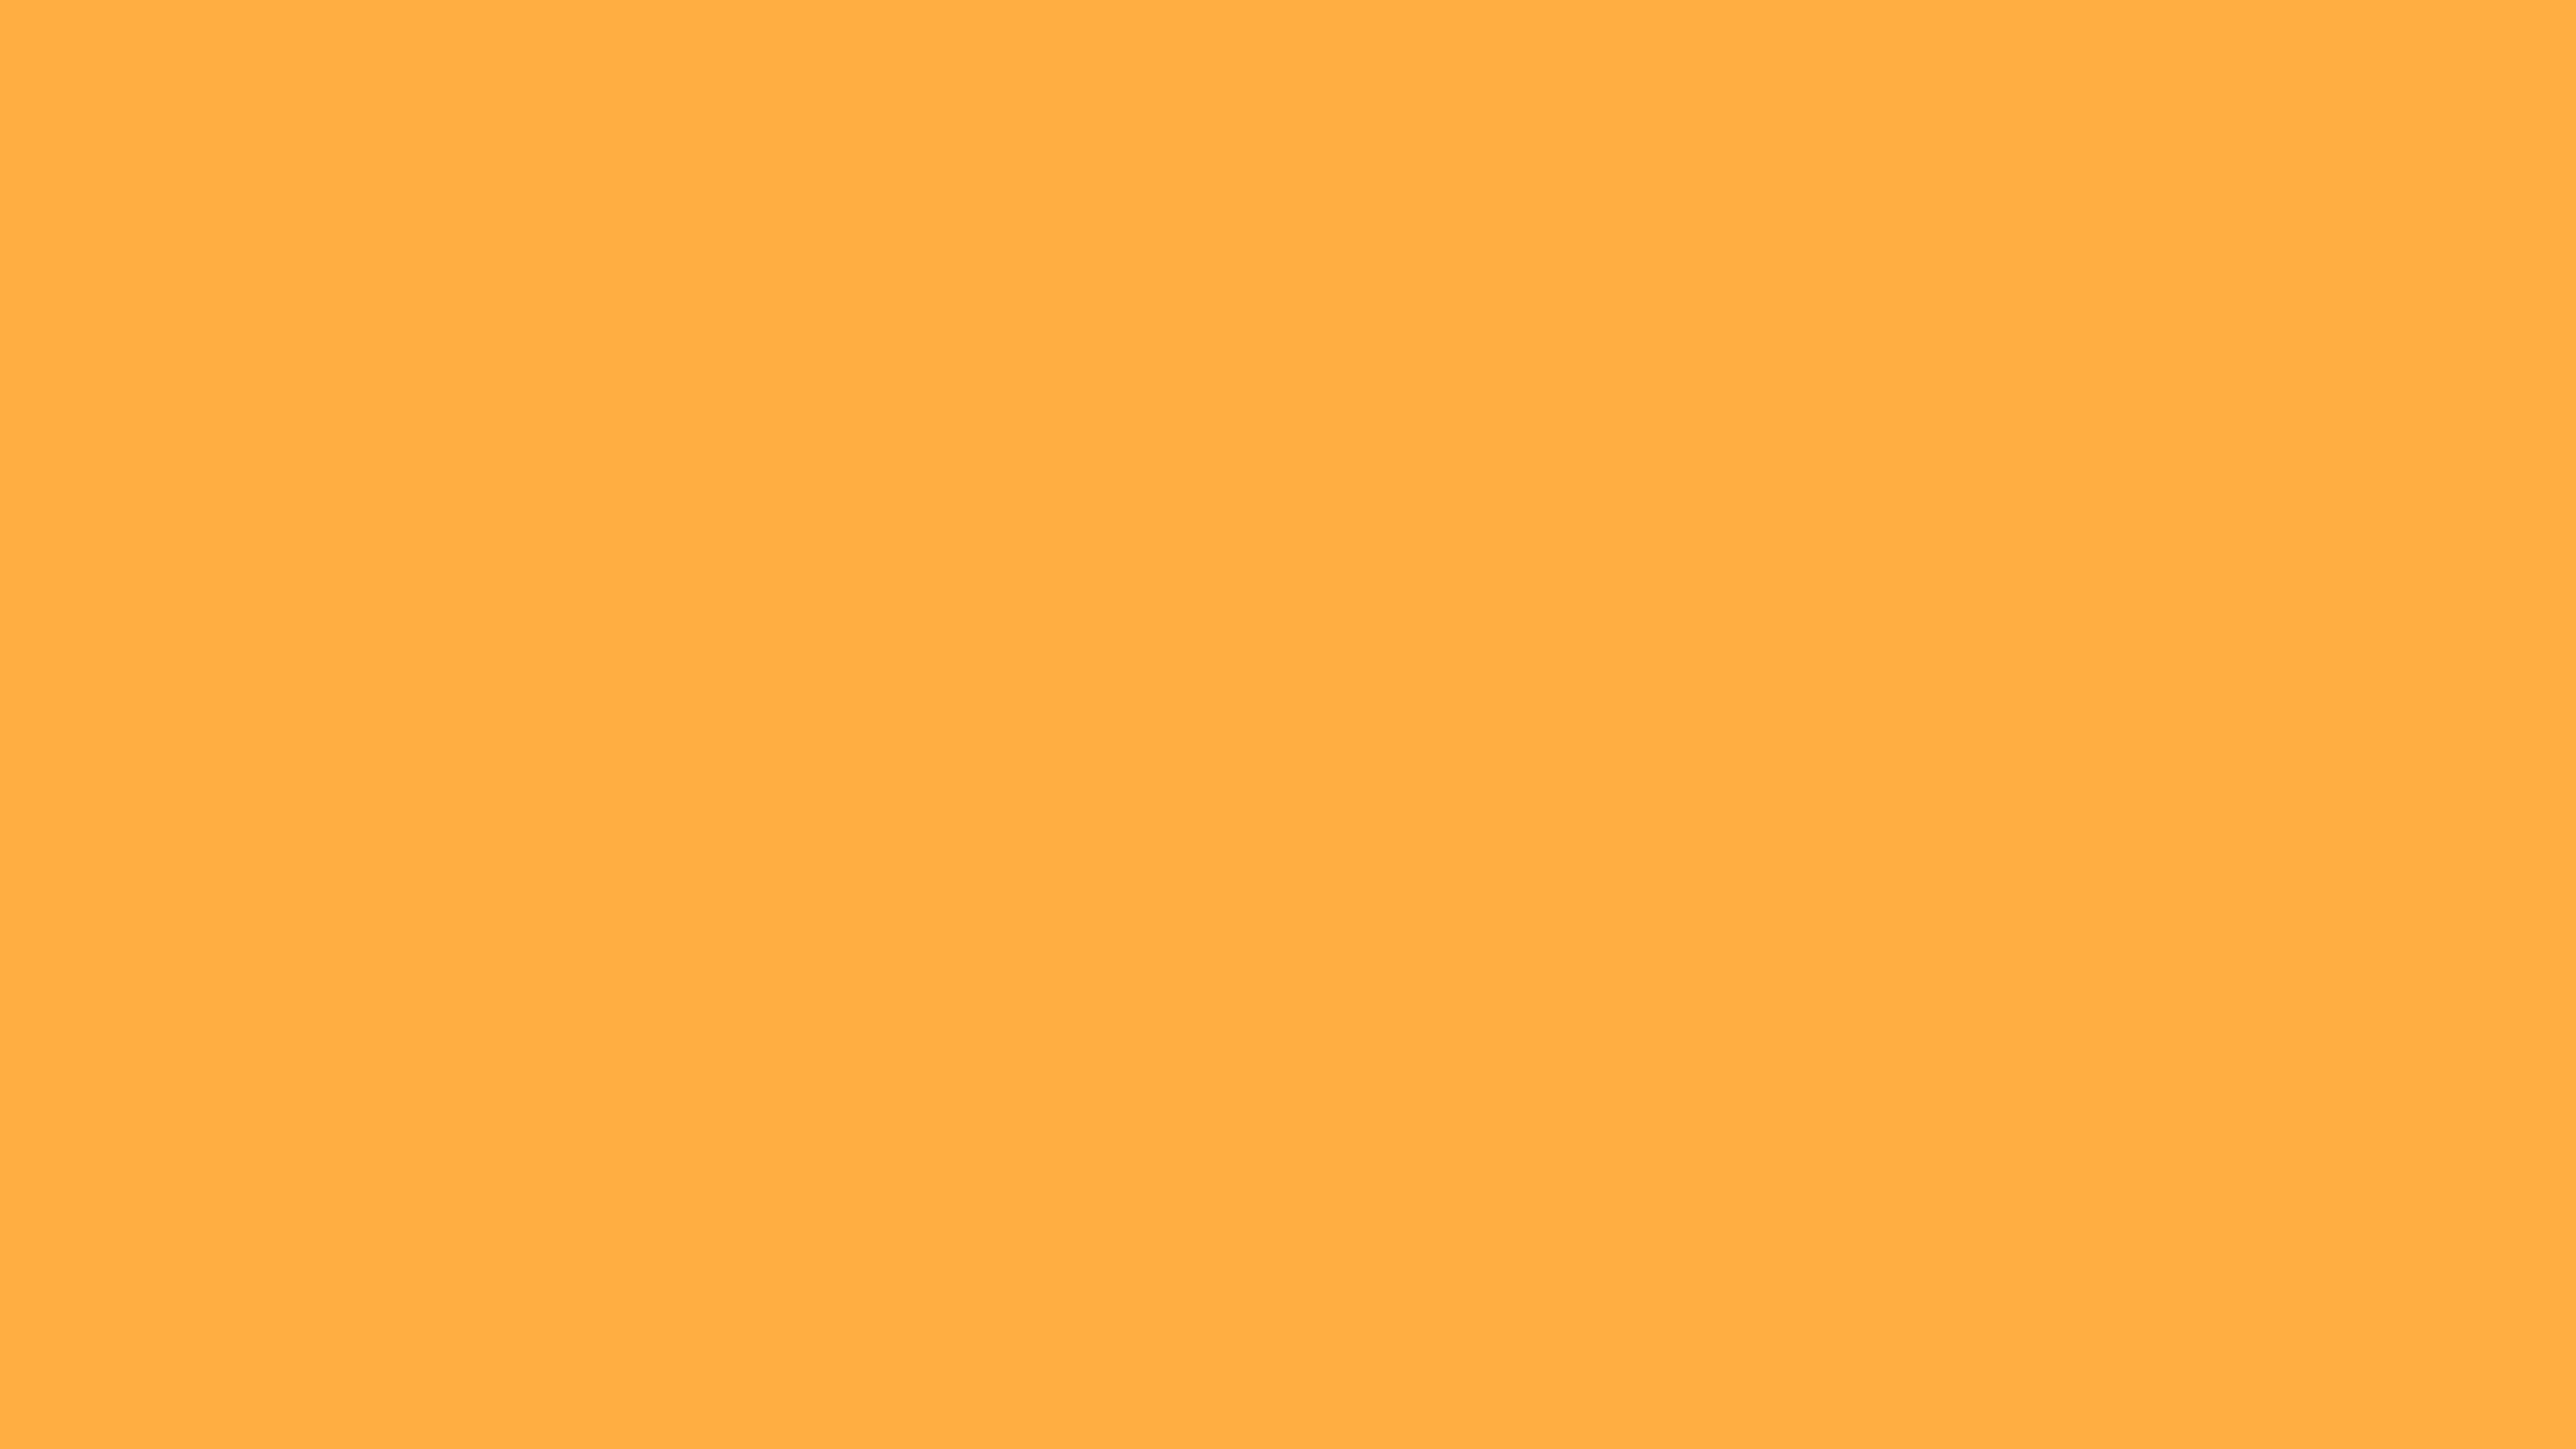 4096x2304 Yellow Orange Solid Color Background